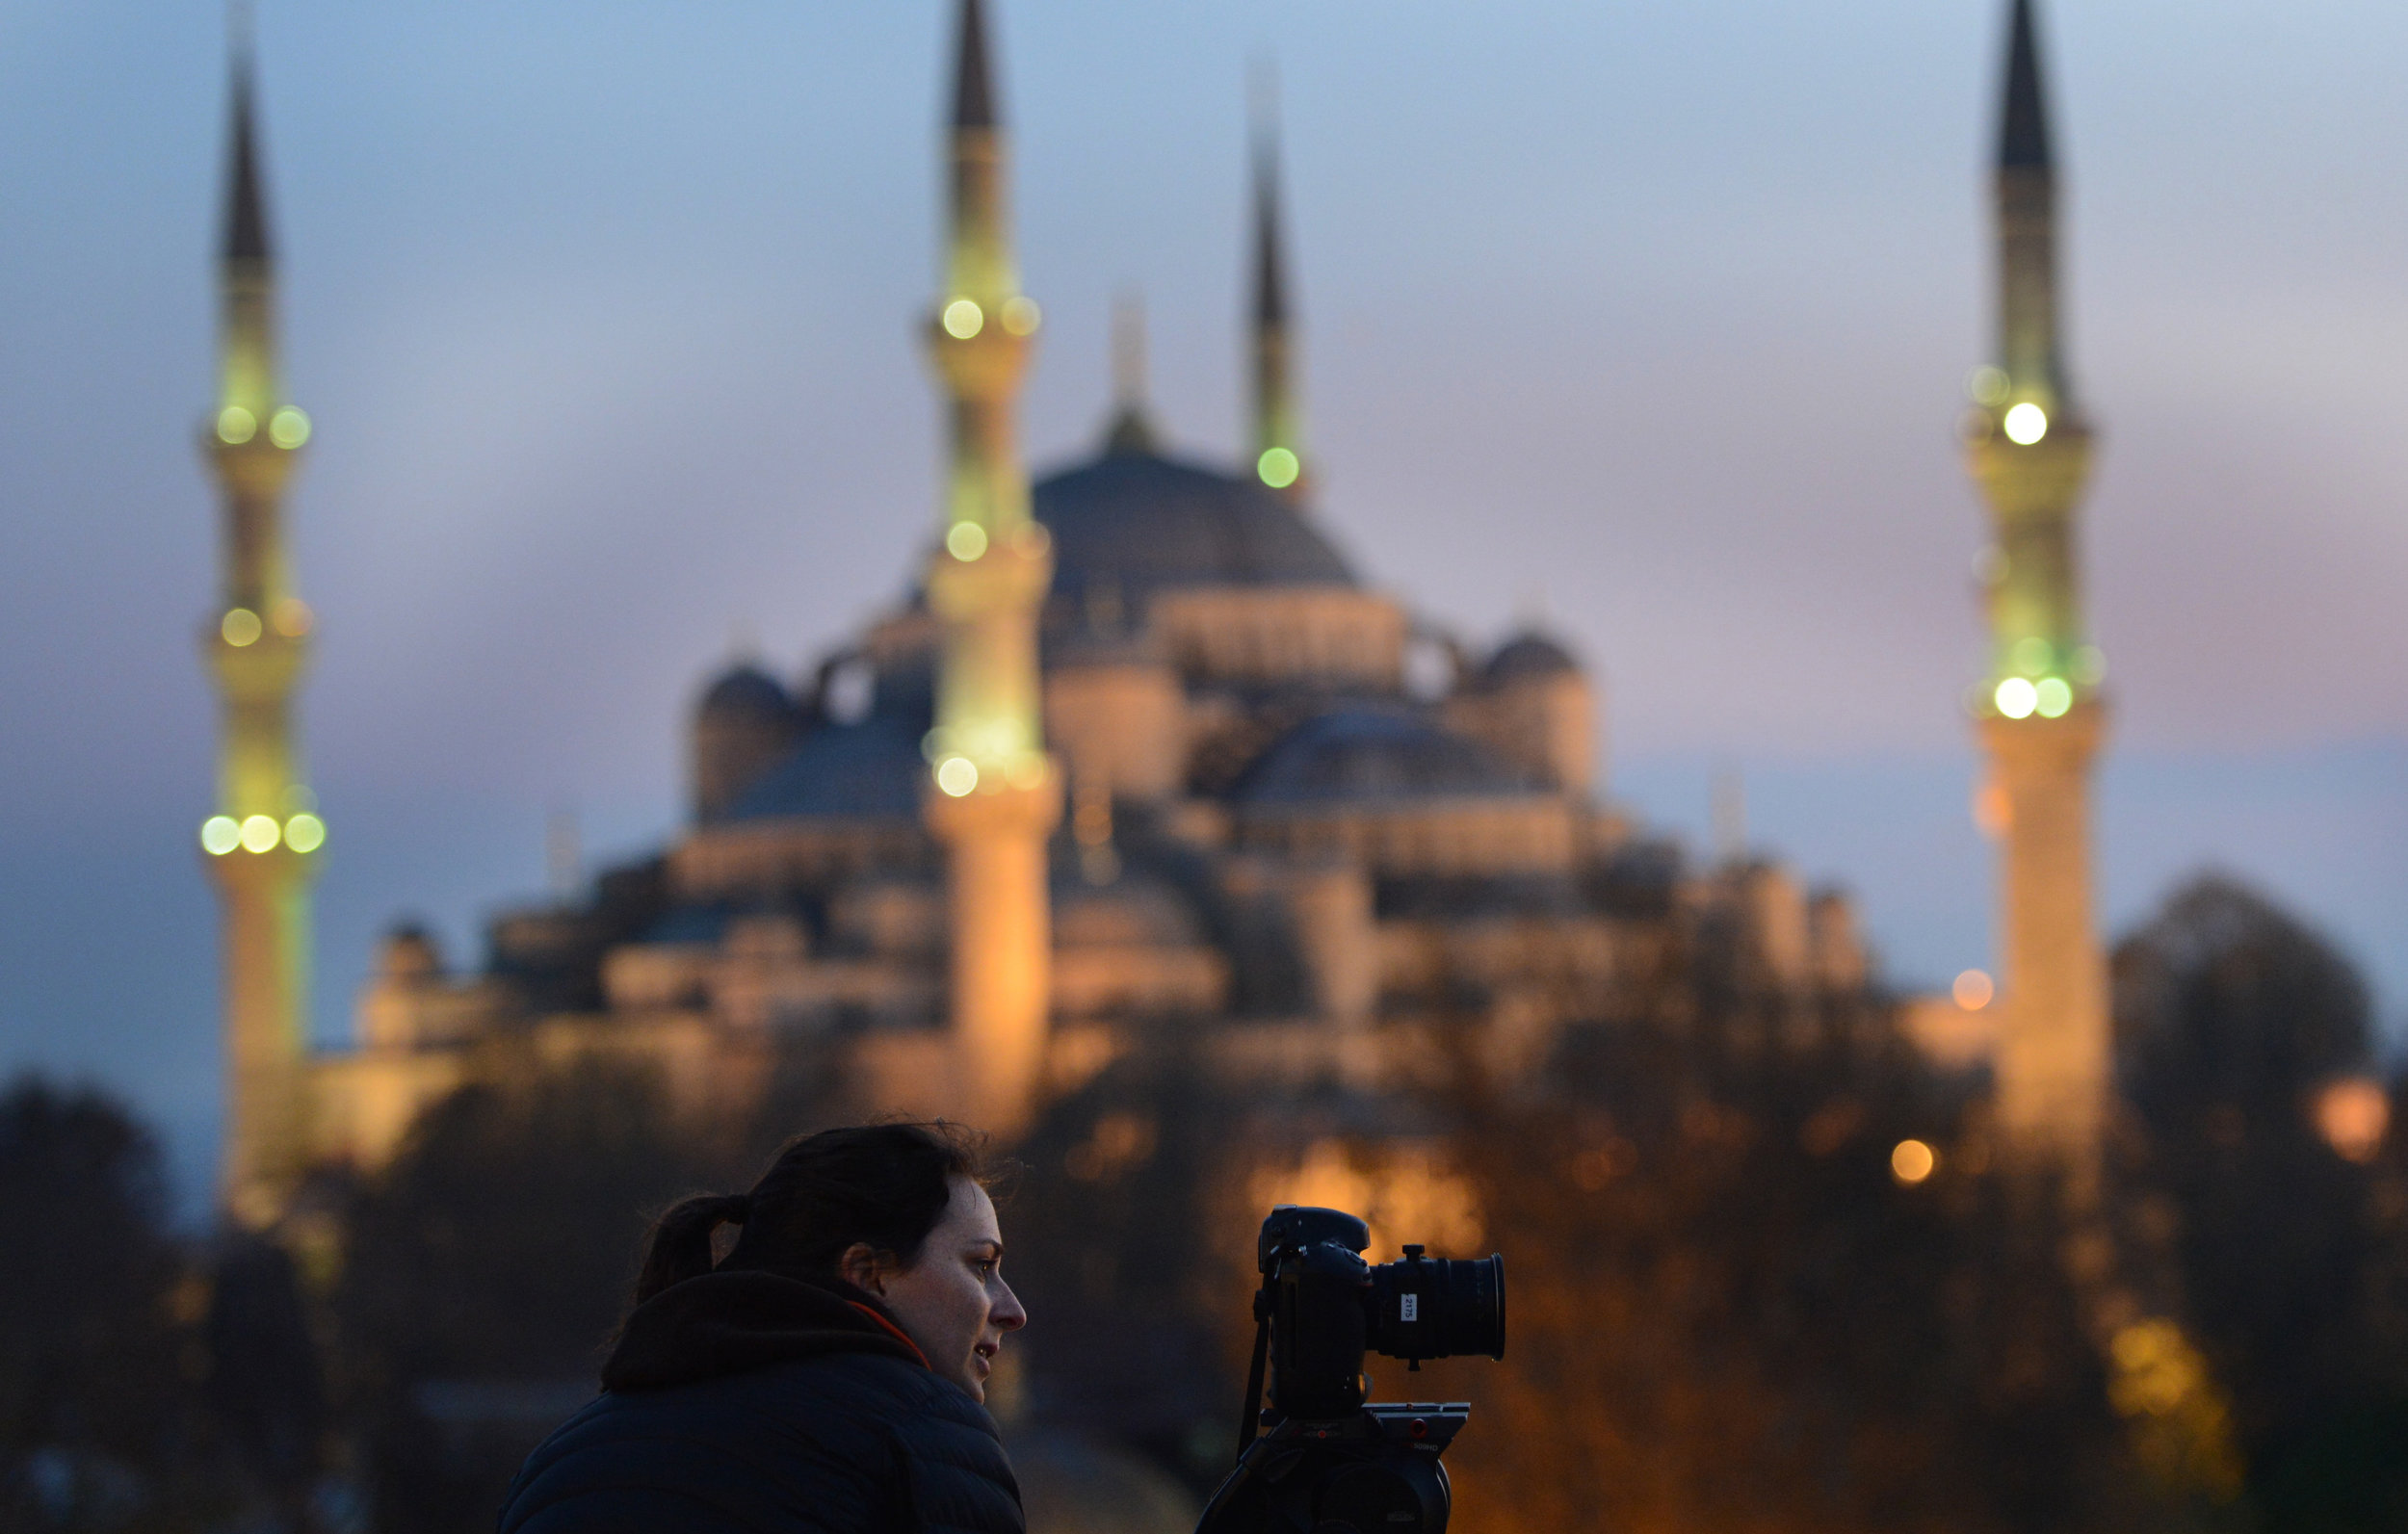 Capturing video from a rooftop in front of the Sultan Ahmed Mosque (popularly known as the Blue Mosque).